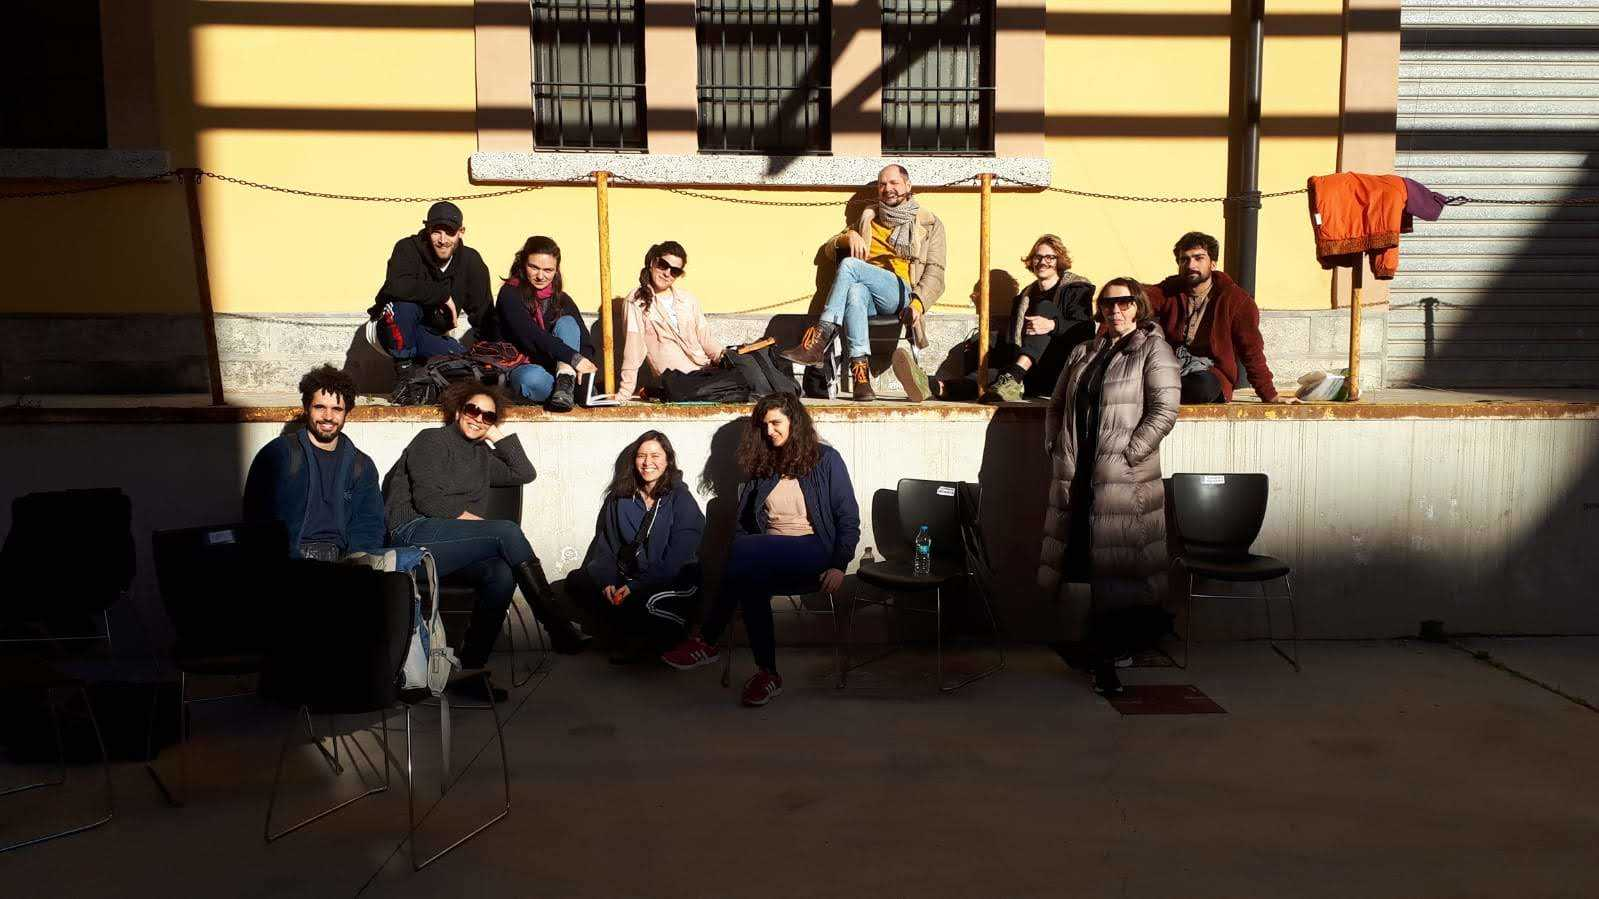 The Curating Positions: Logics of Montage - study group at the Ex Manifattura Tabacchi in Cagliari. January 2019. Photo credit: Nikos Doulos.